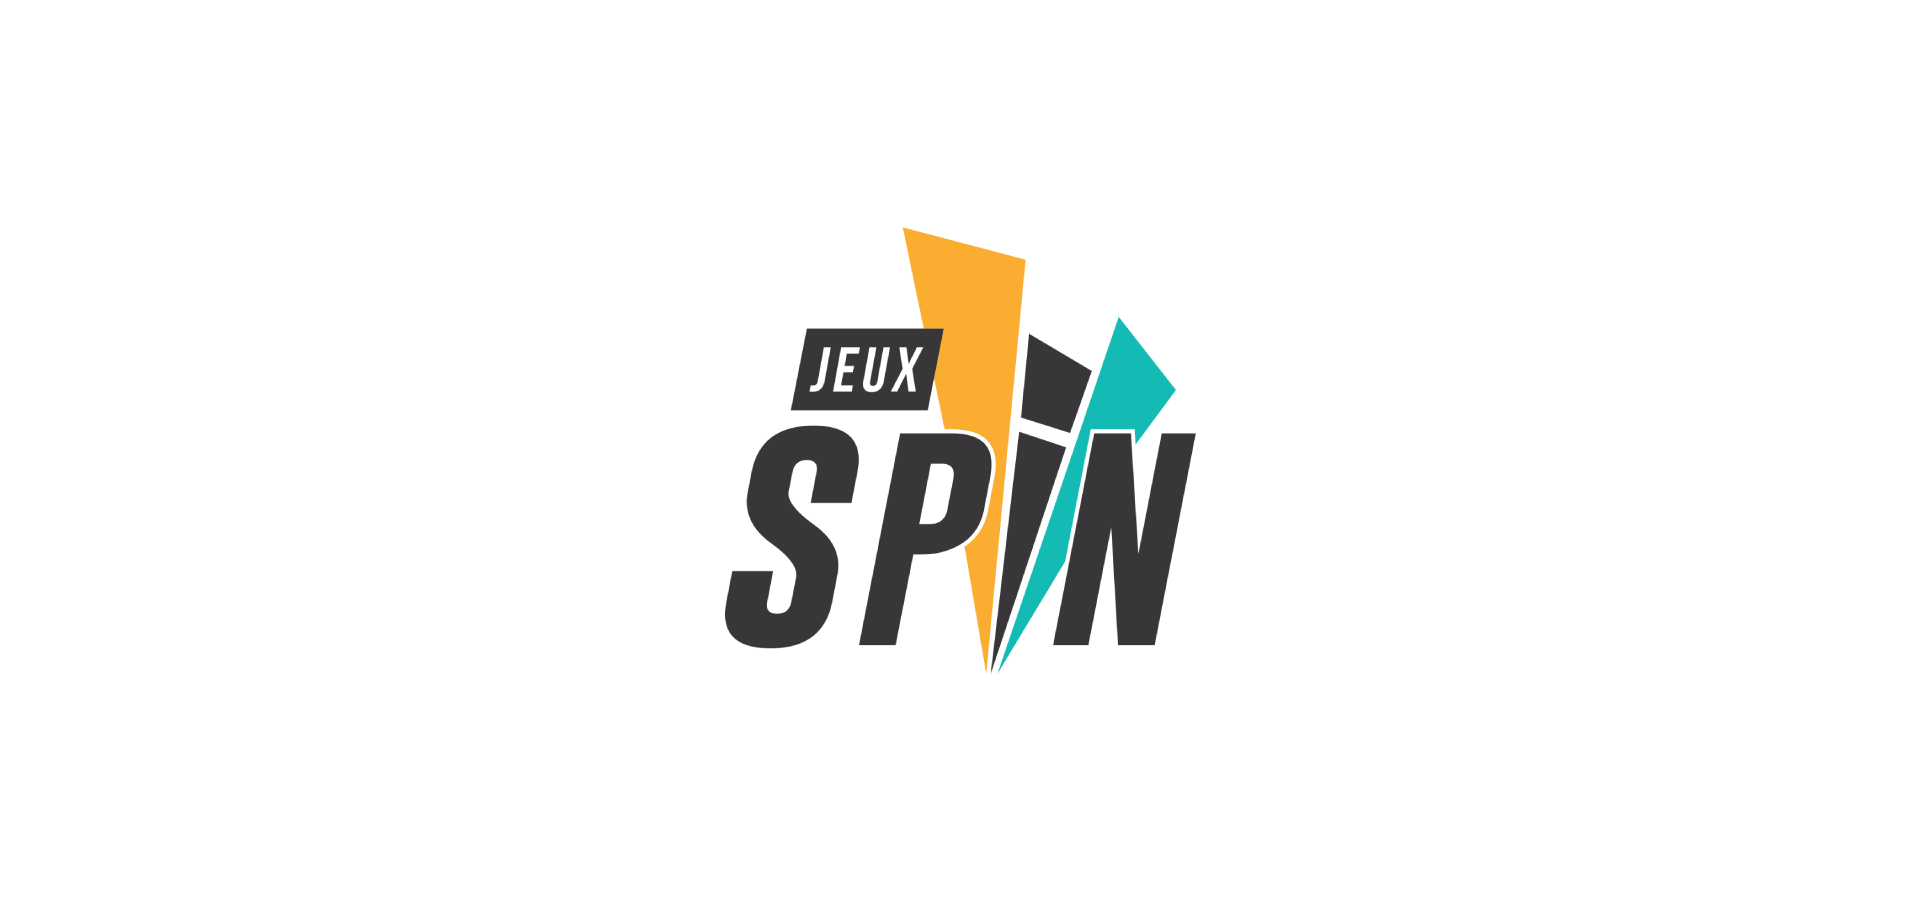 logo jeux spin accueil